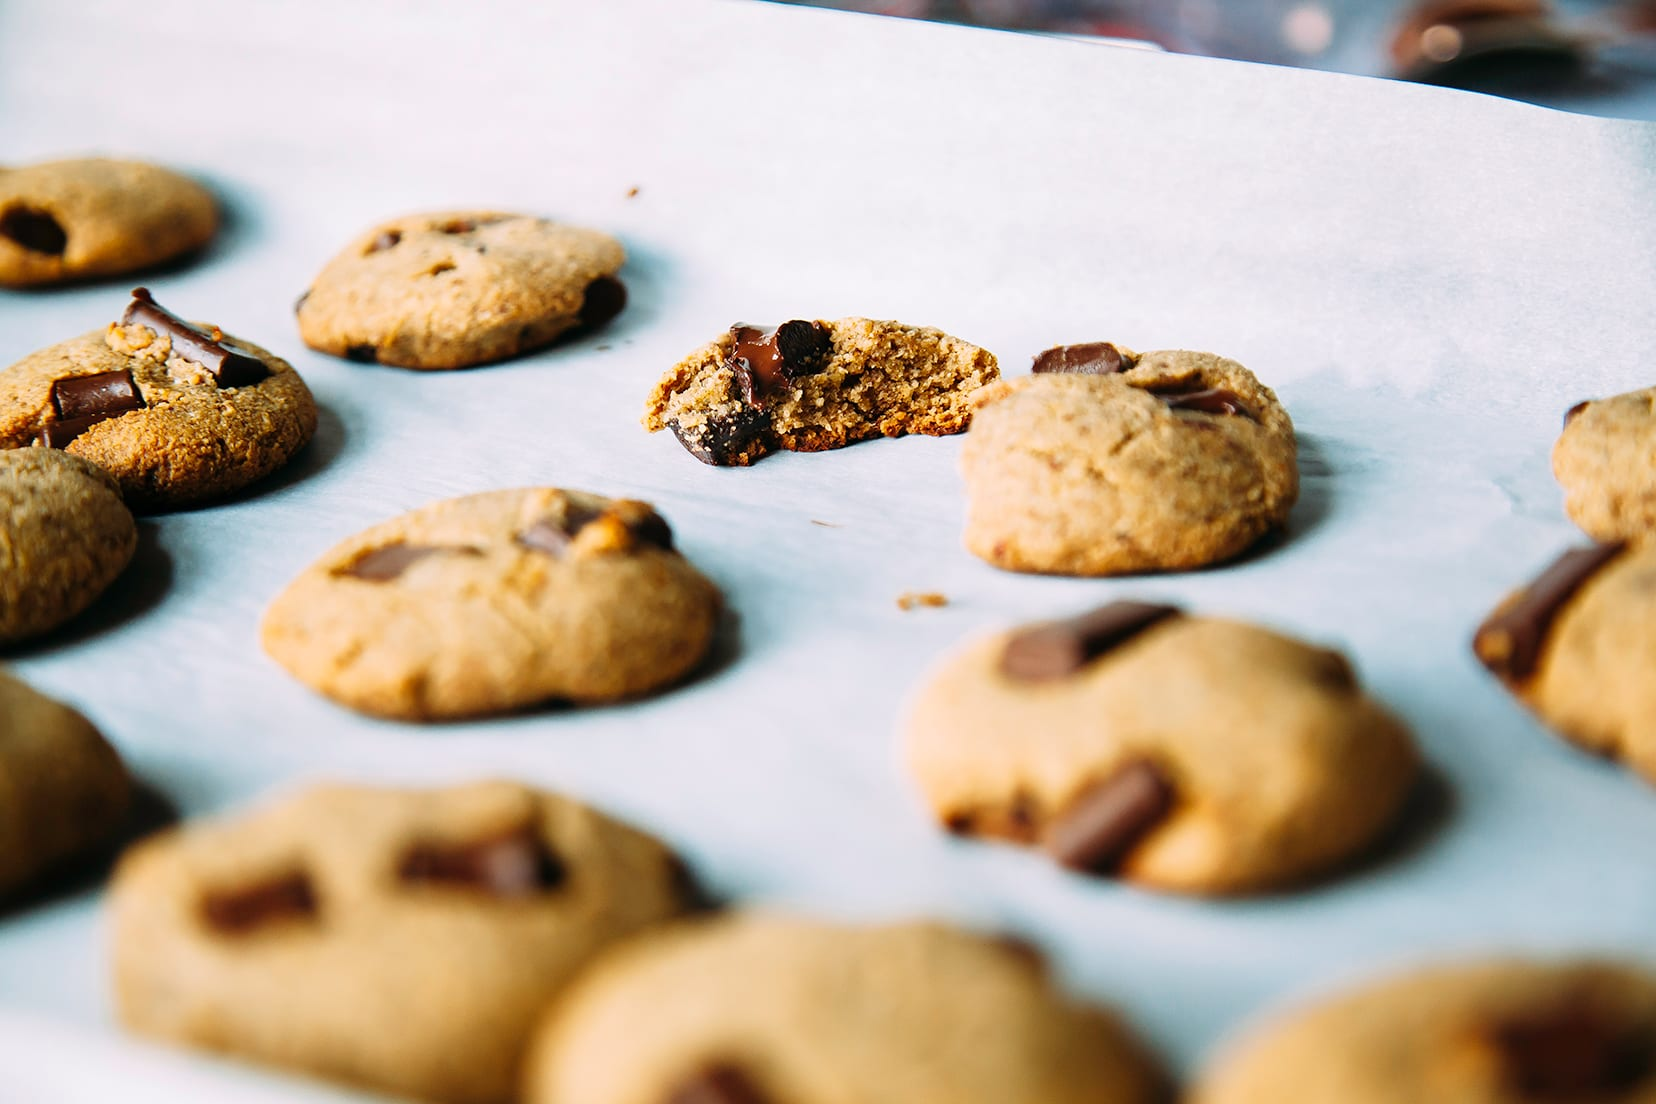 A side angle of chocolate chunk wonder cookies. One of the cookies is split in half to reveal the moist interior.